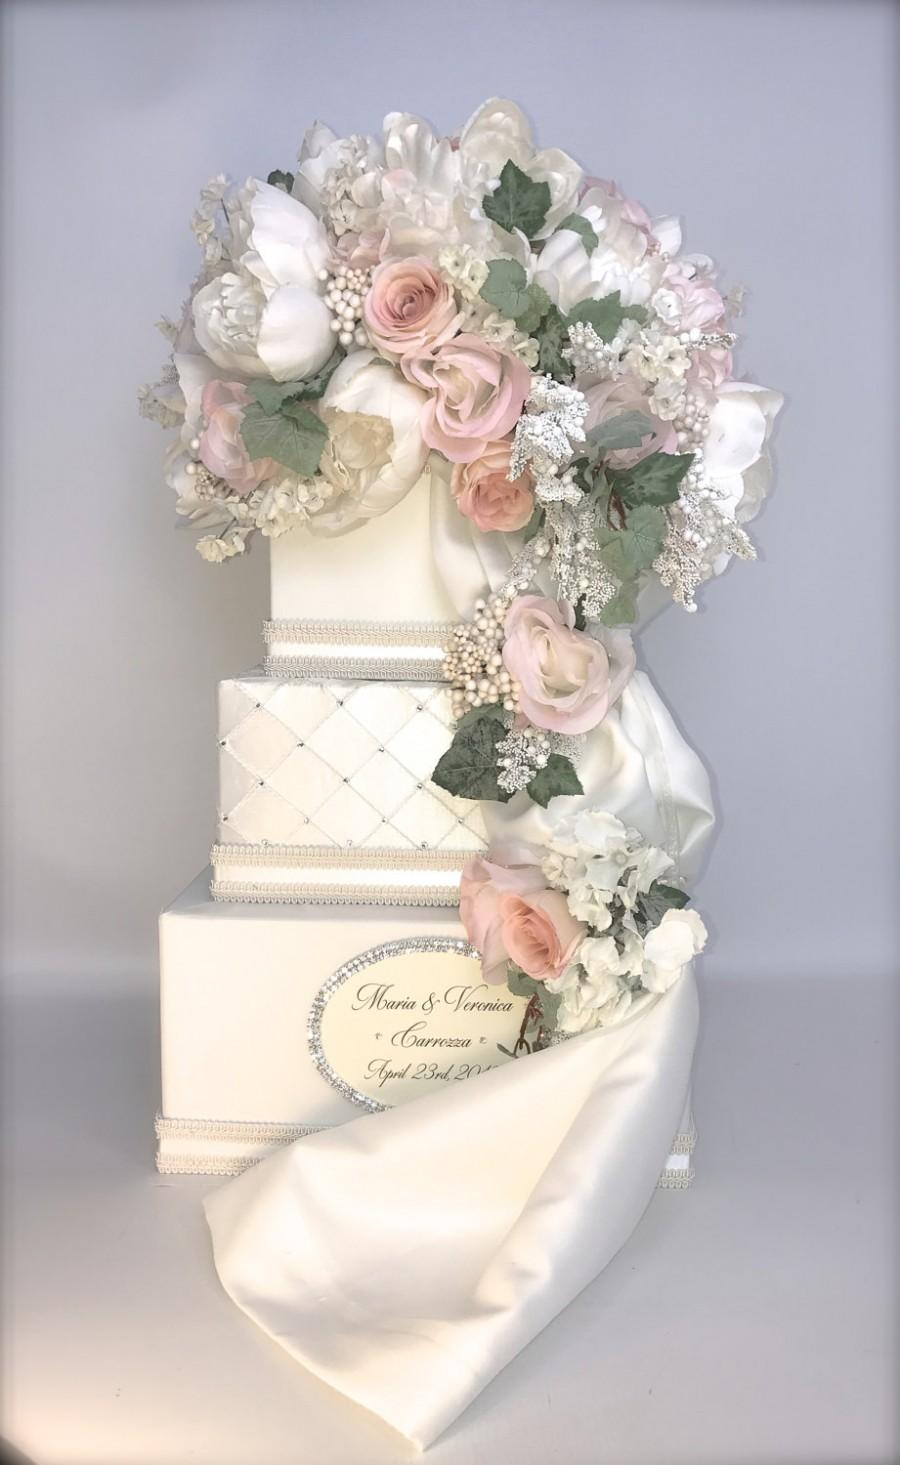 Personalized Wedding Card Box Secured Lock Peach Pink Cream Holder Unique Elegant Reception With Slot Secure